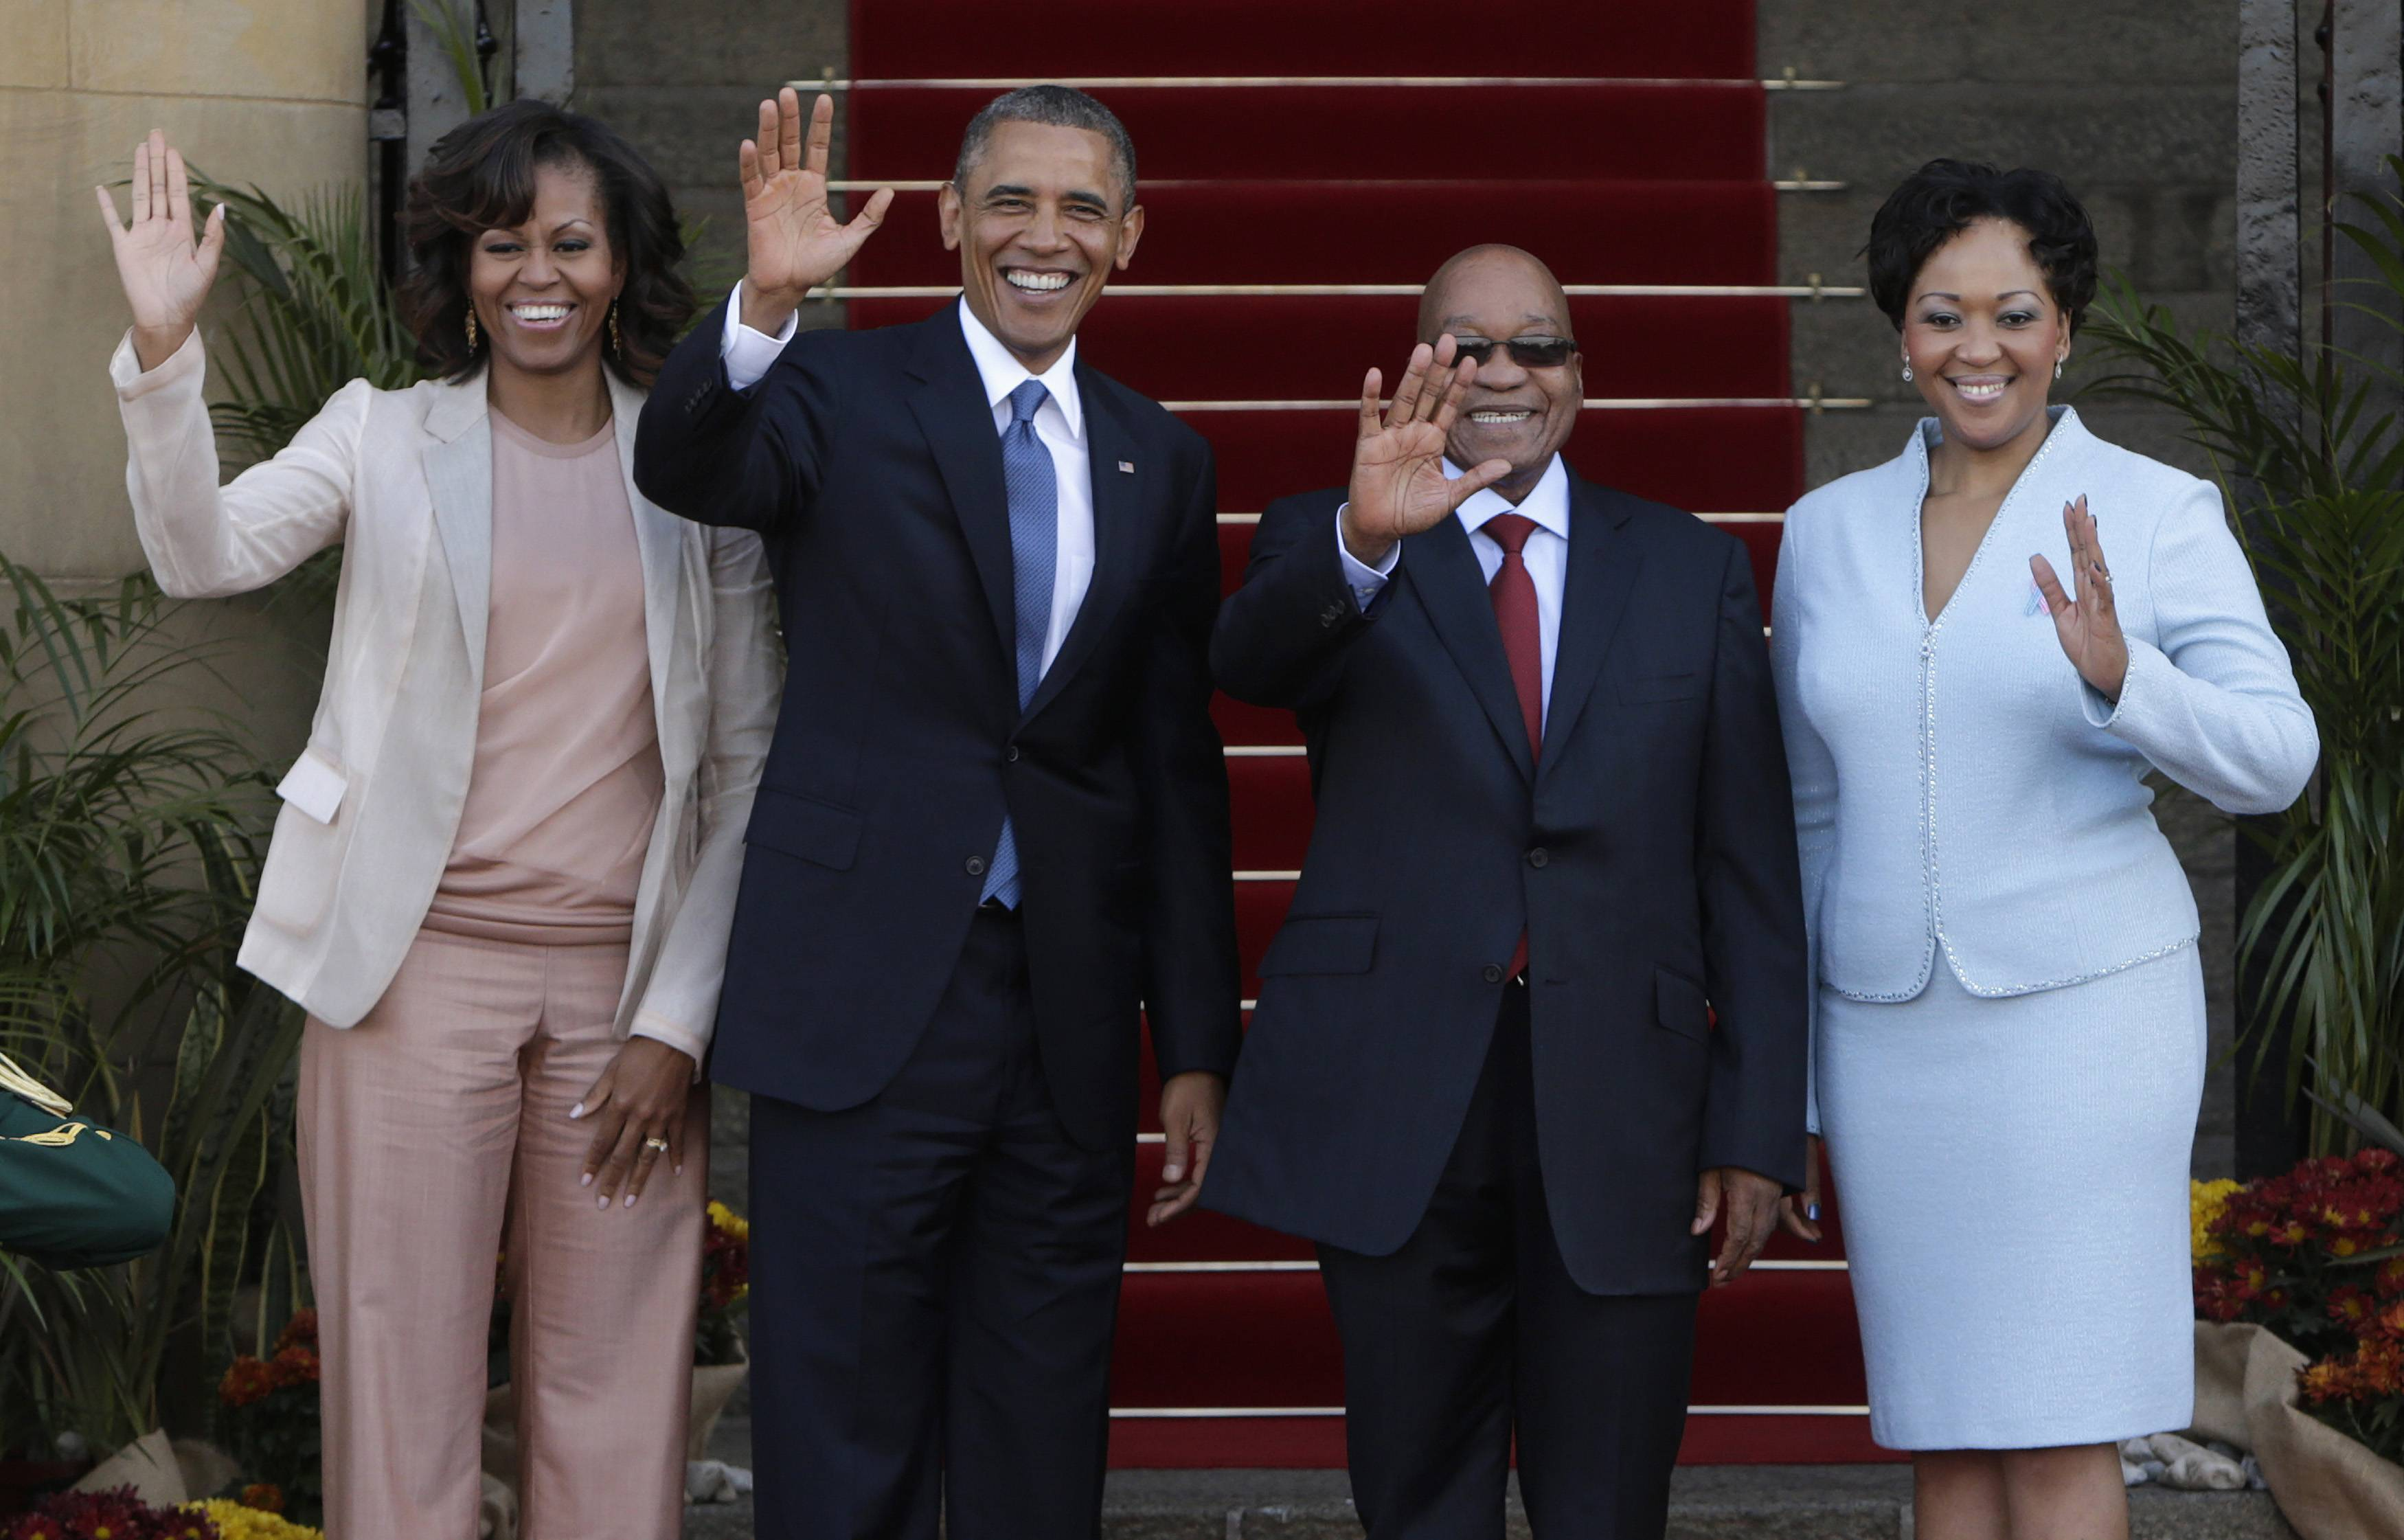 U.S. President Barack Obama (2nd L) and First Lady Michelle Obama (L) wave next to South Africa's President Jacob Zuma (2nd R) and his wife, First Lady Thobeka Madiba-Zuma, at the Union Building in Pretoria, June 29, 2013. Obama paid tribute to anti-apartheid hero Nelson Mandela as he flew to South Africa on Friday but played down expectations of a meeting with the ailing black leader during an Africa tour promoting democracy and food security. REUTERS/Gary Cameron   (SOUTH AFRICA - Tags: POLITICS)